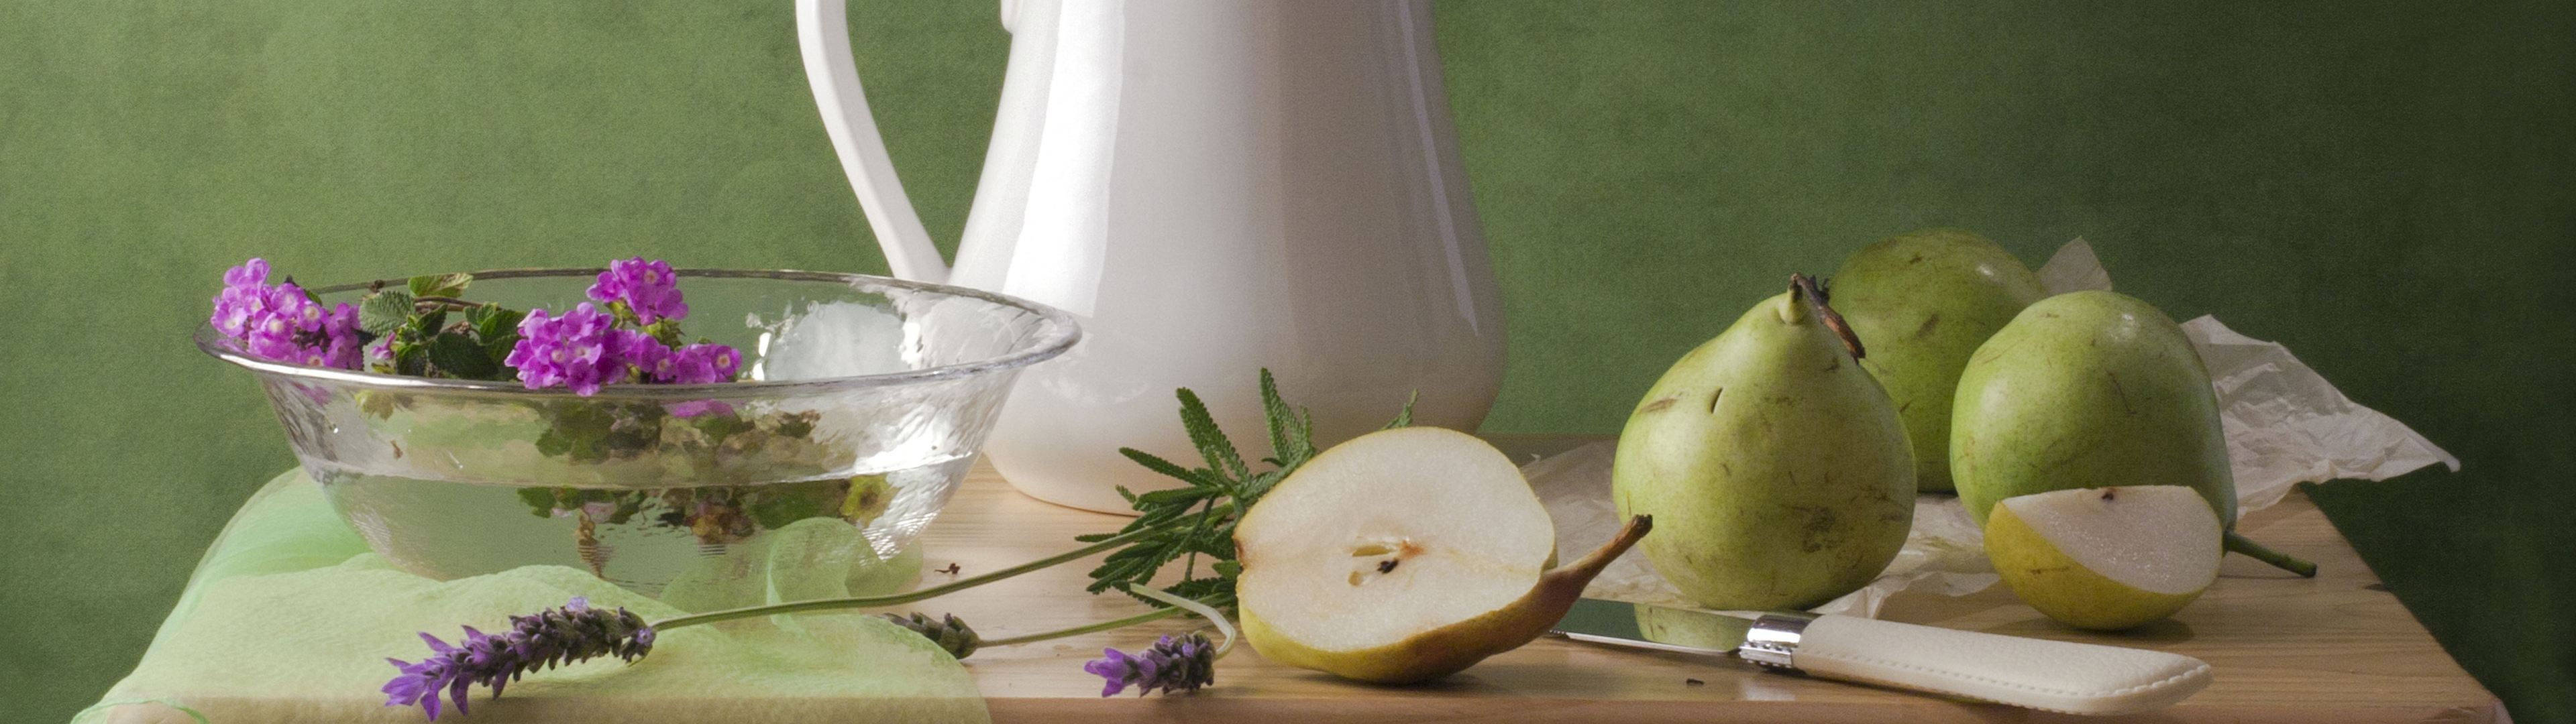 WallpaperFusion-lavender-still-life-with-pears-Original-3840x1080.jpg